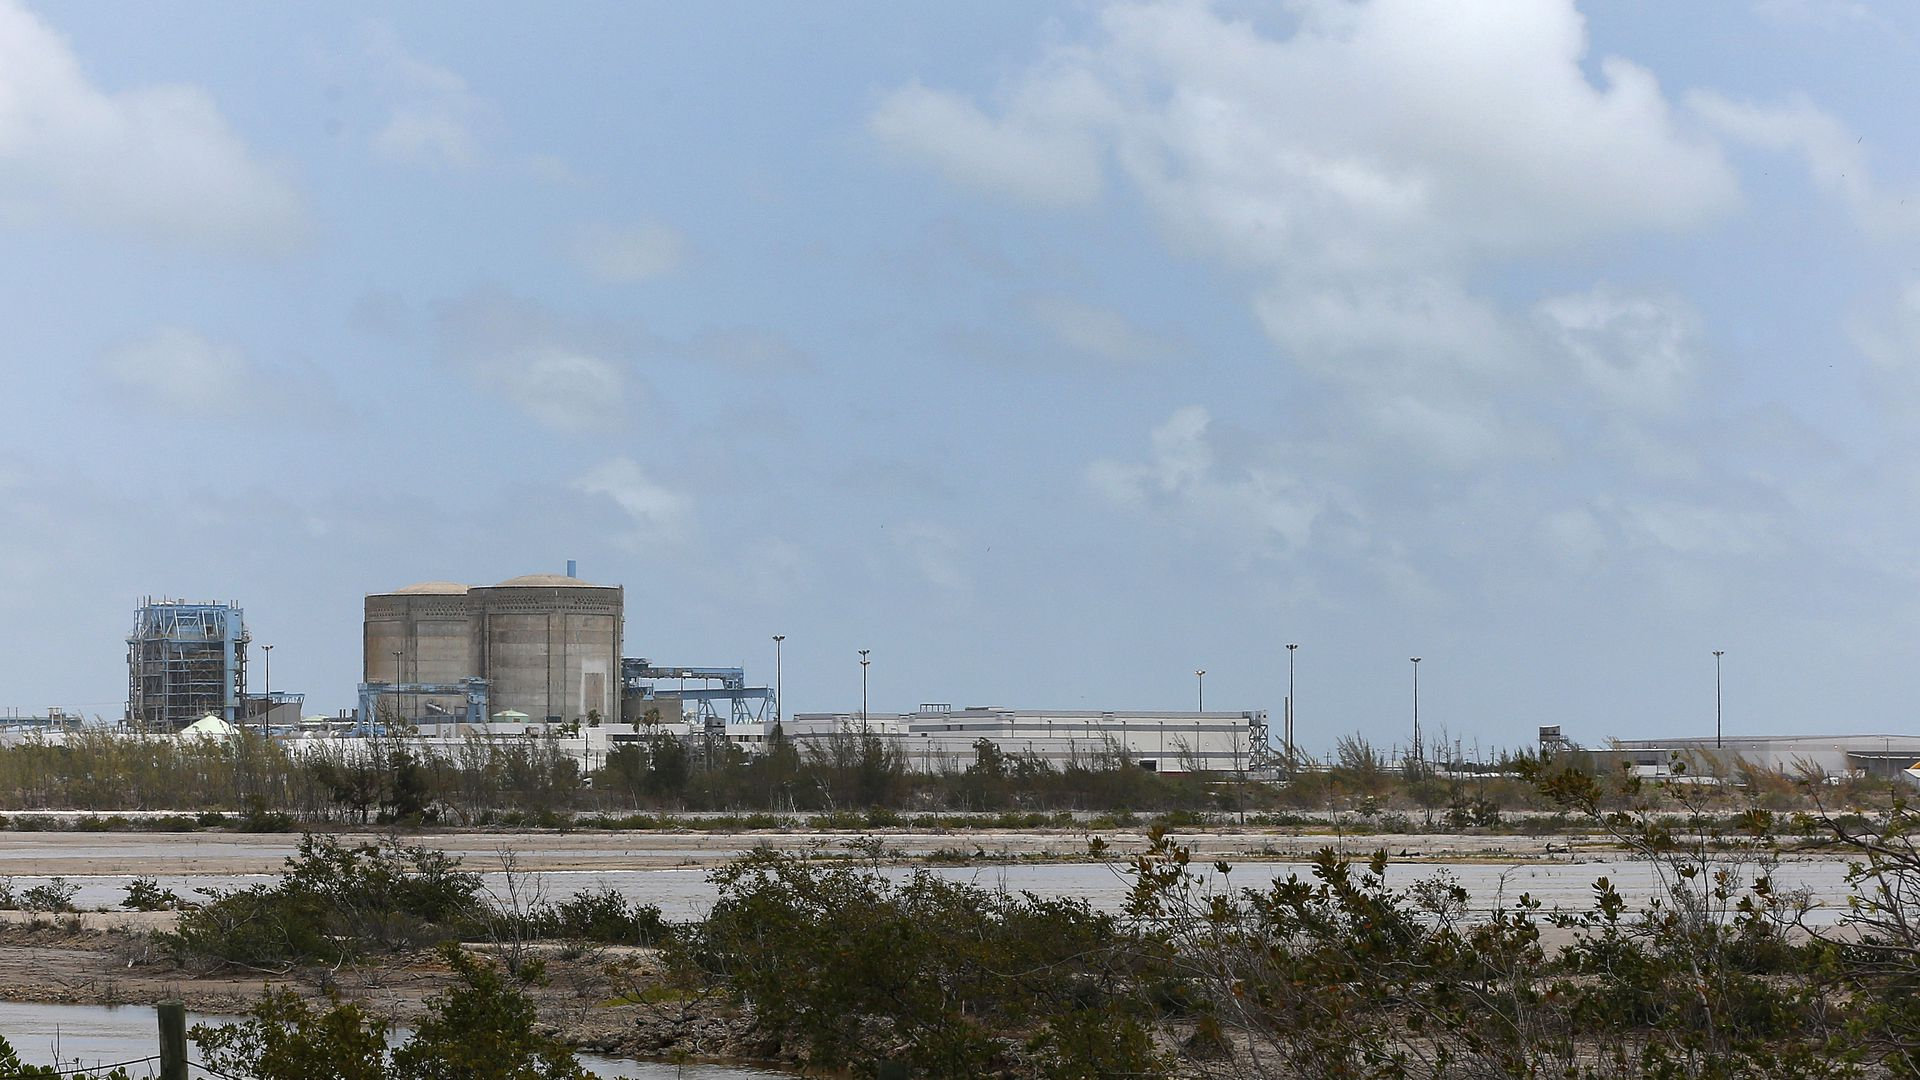 A nuclear power plant in Florida.